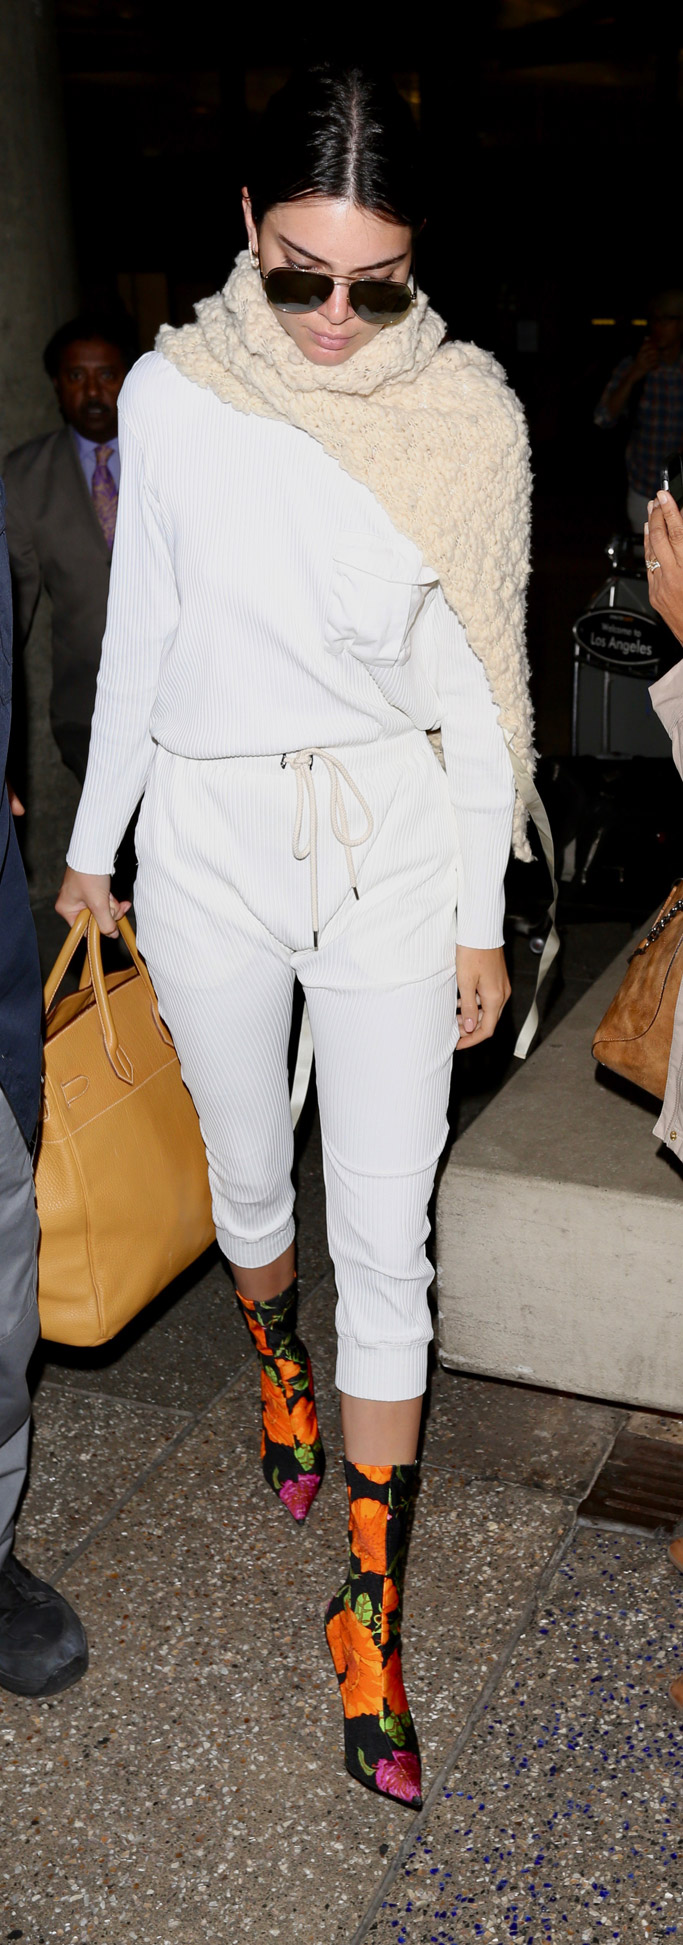 kendall jenner, balenciaga, knife boots, booties, style, sweatpants, bassike, spring 2017